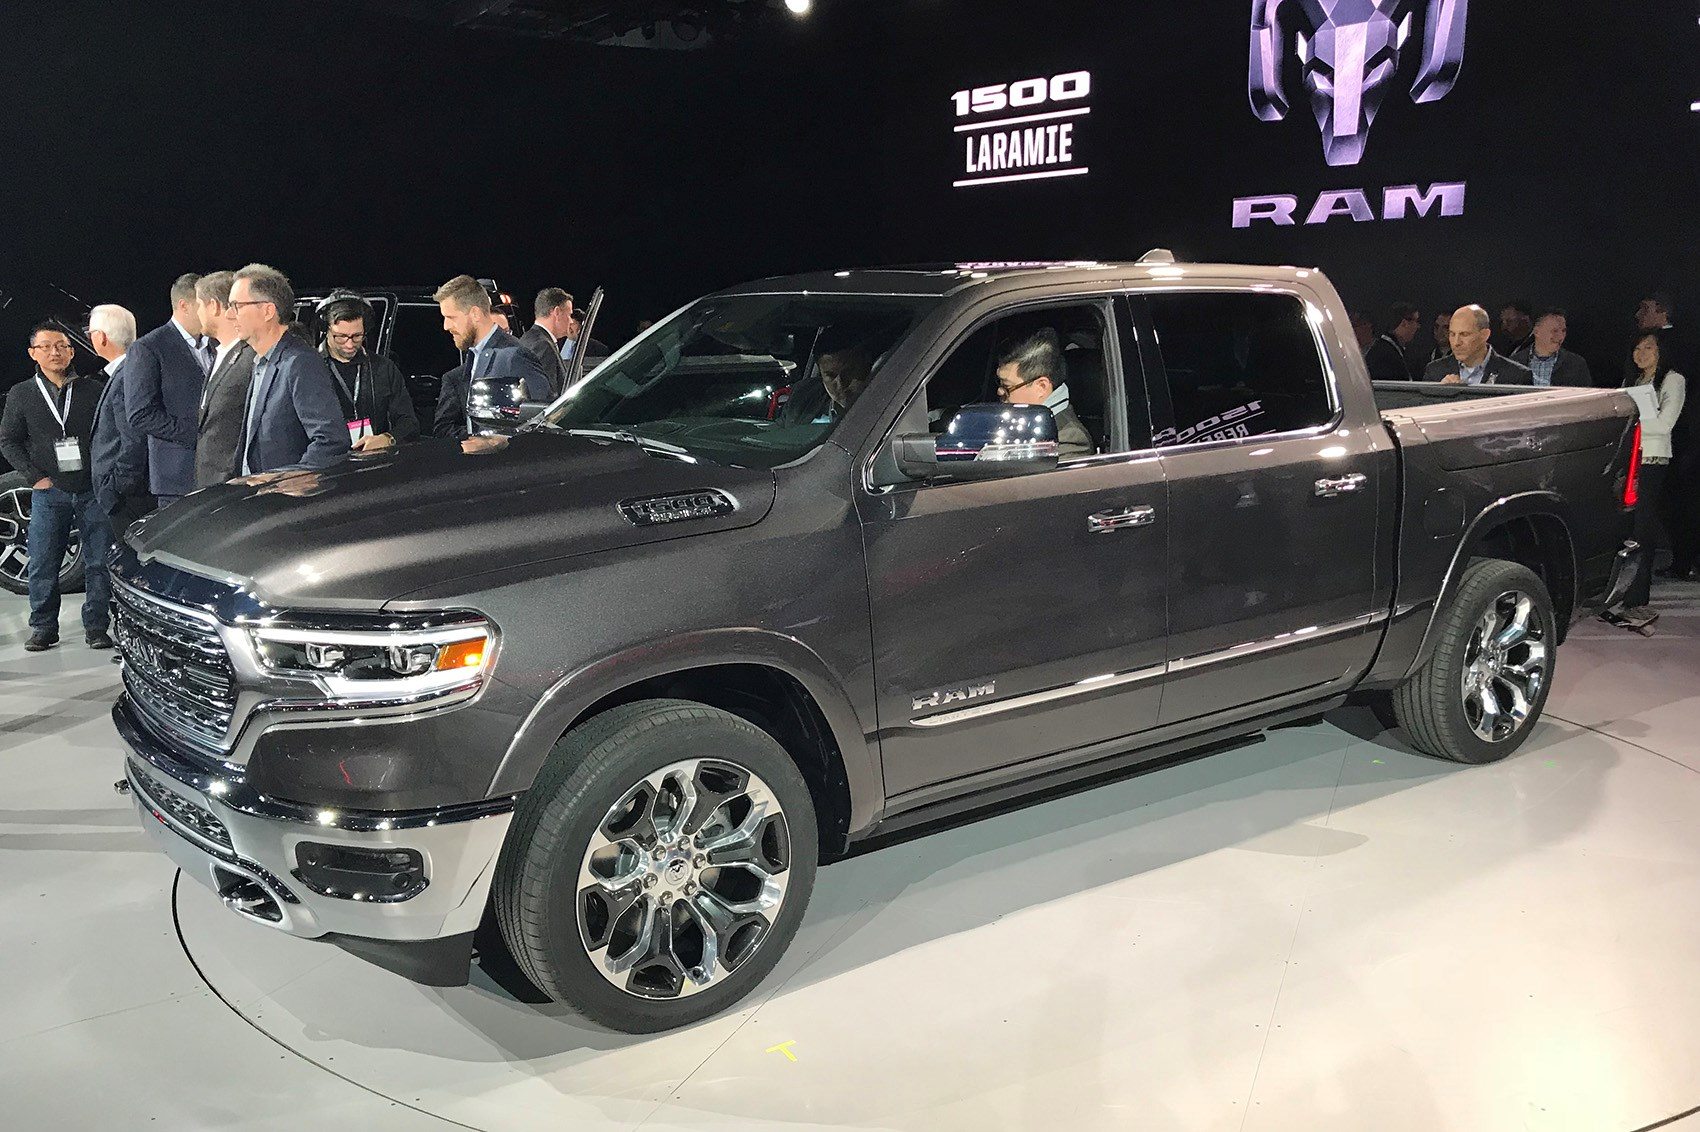 New 2019 Ram 1500 Pick Up Unveiled Pictures Specs